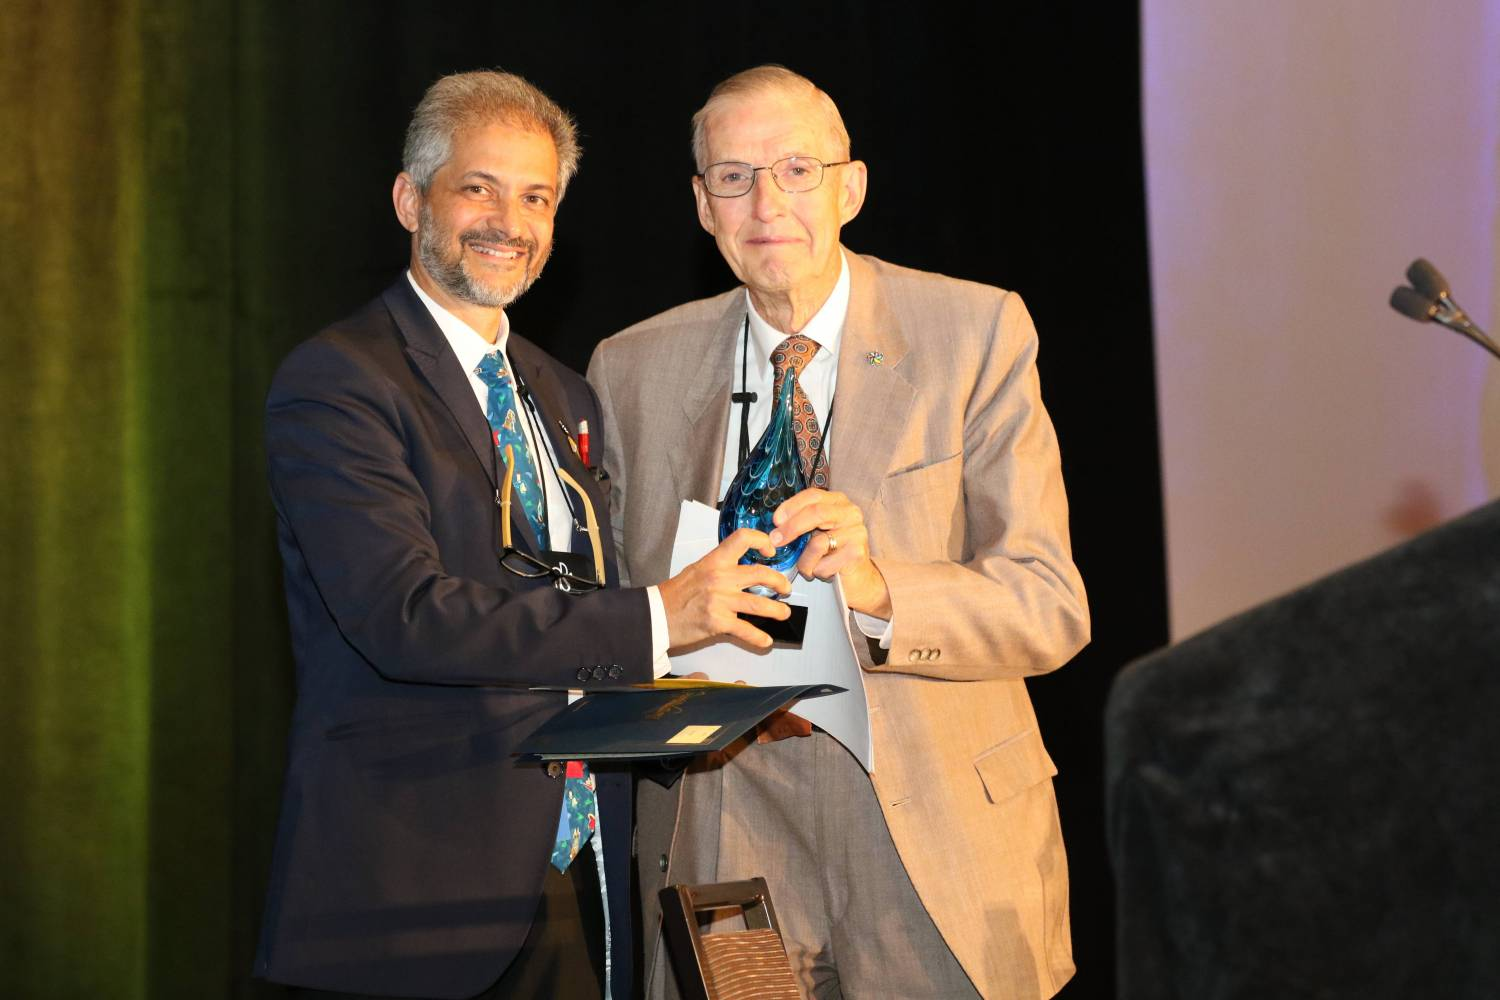 Jim Gage, MD, accepts his award from Unni Narayanan, president of the American Academy for Cerebral Palsy and Developmental Medicine.